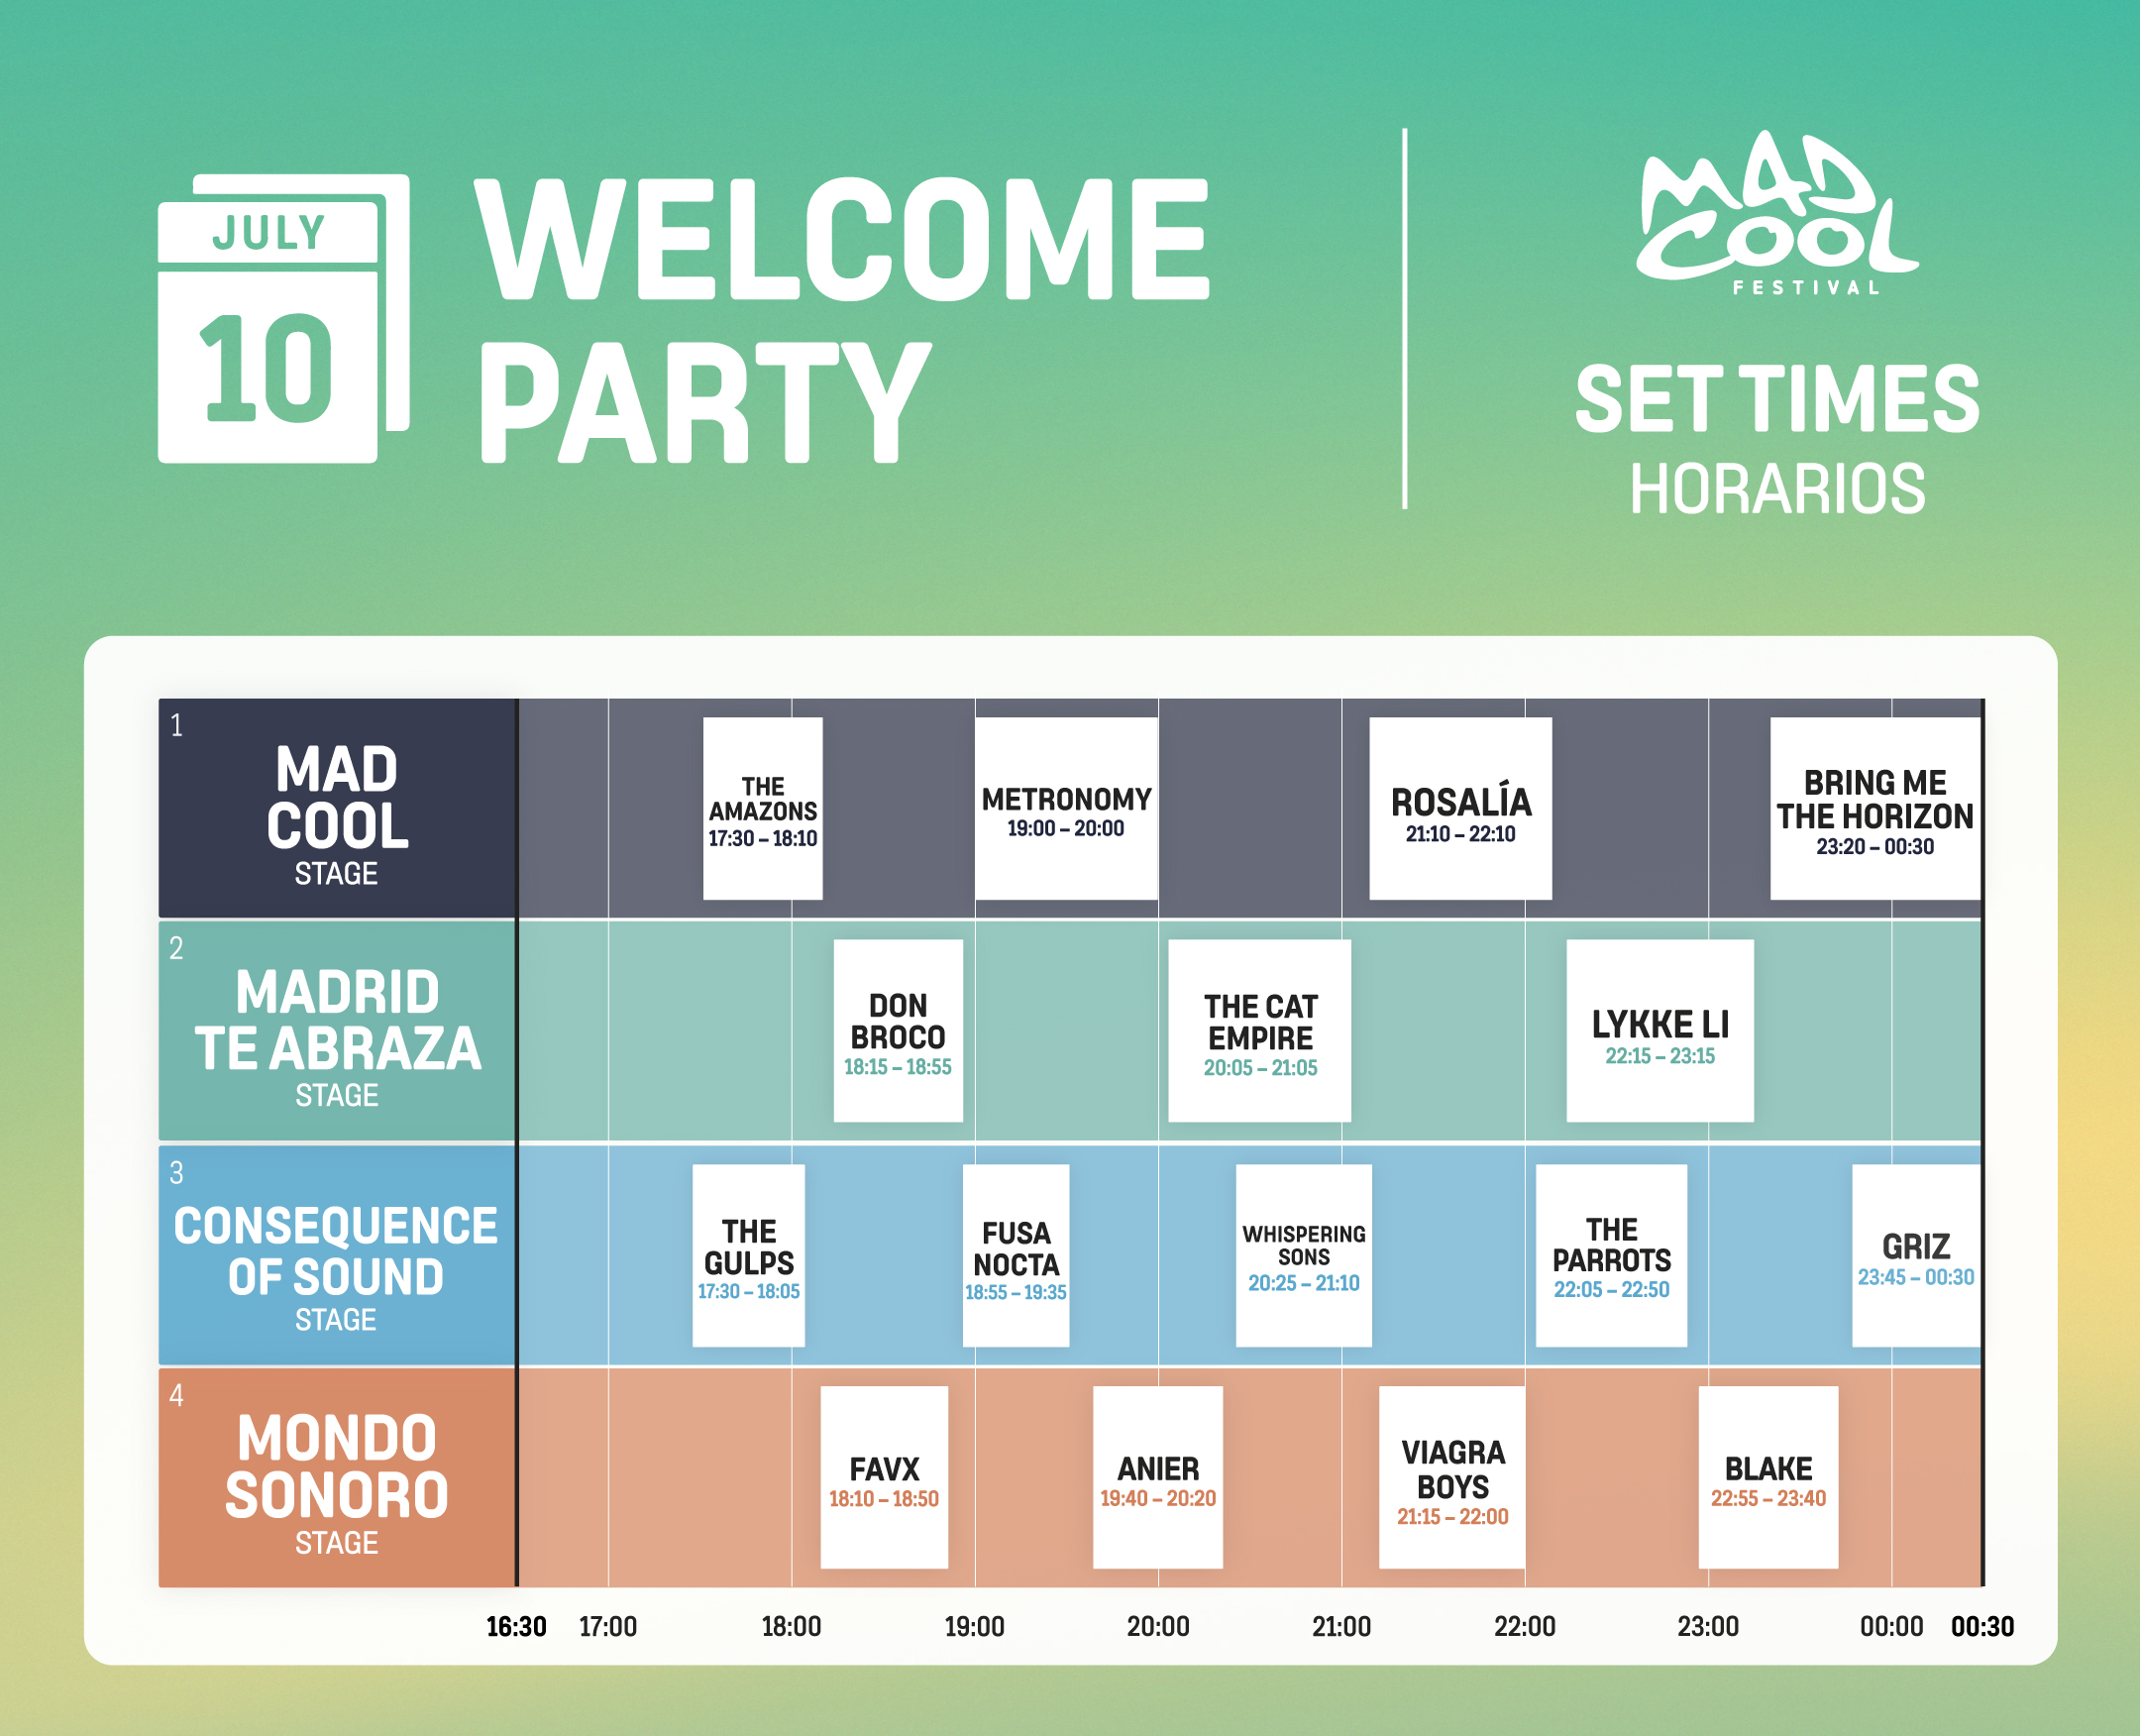 mad cool stage lineup 2019 wednesday